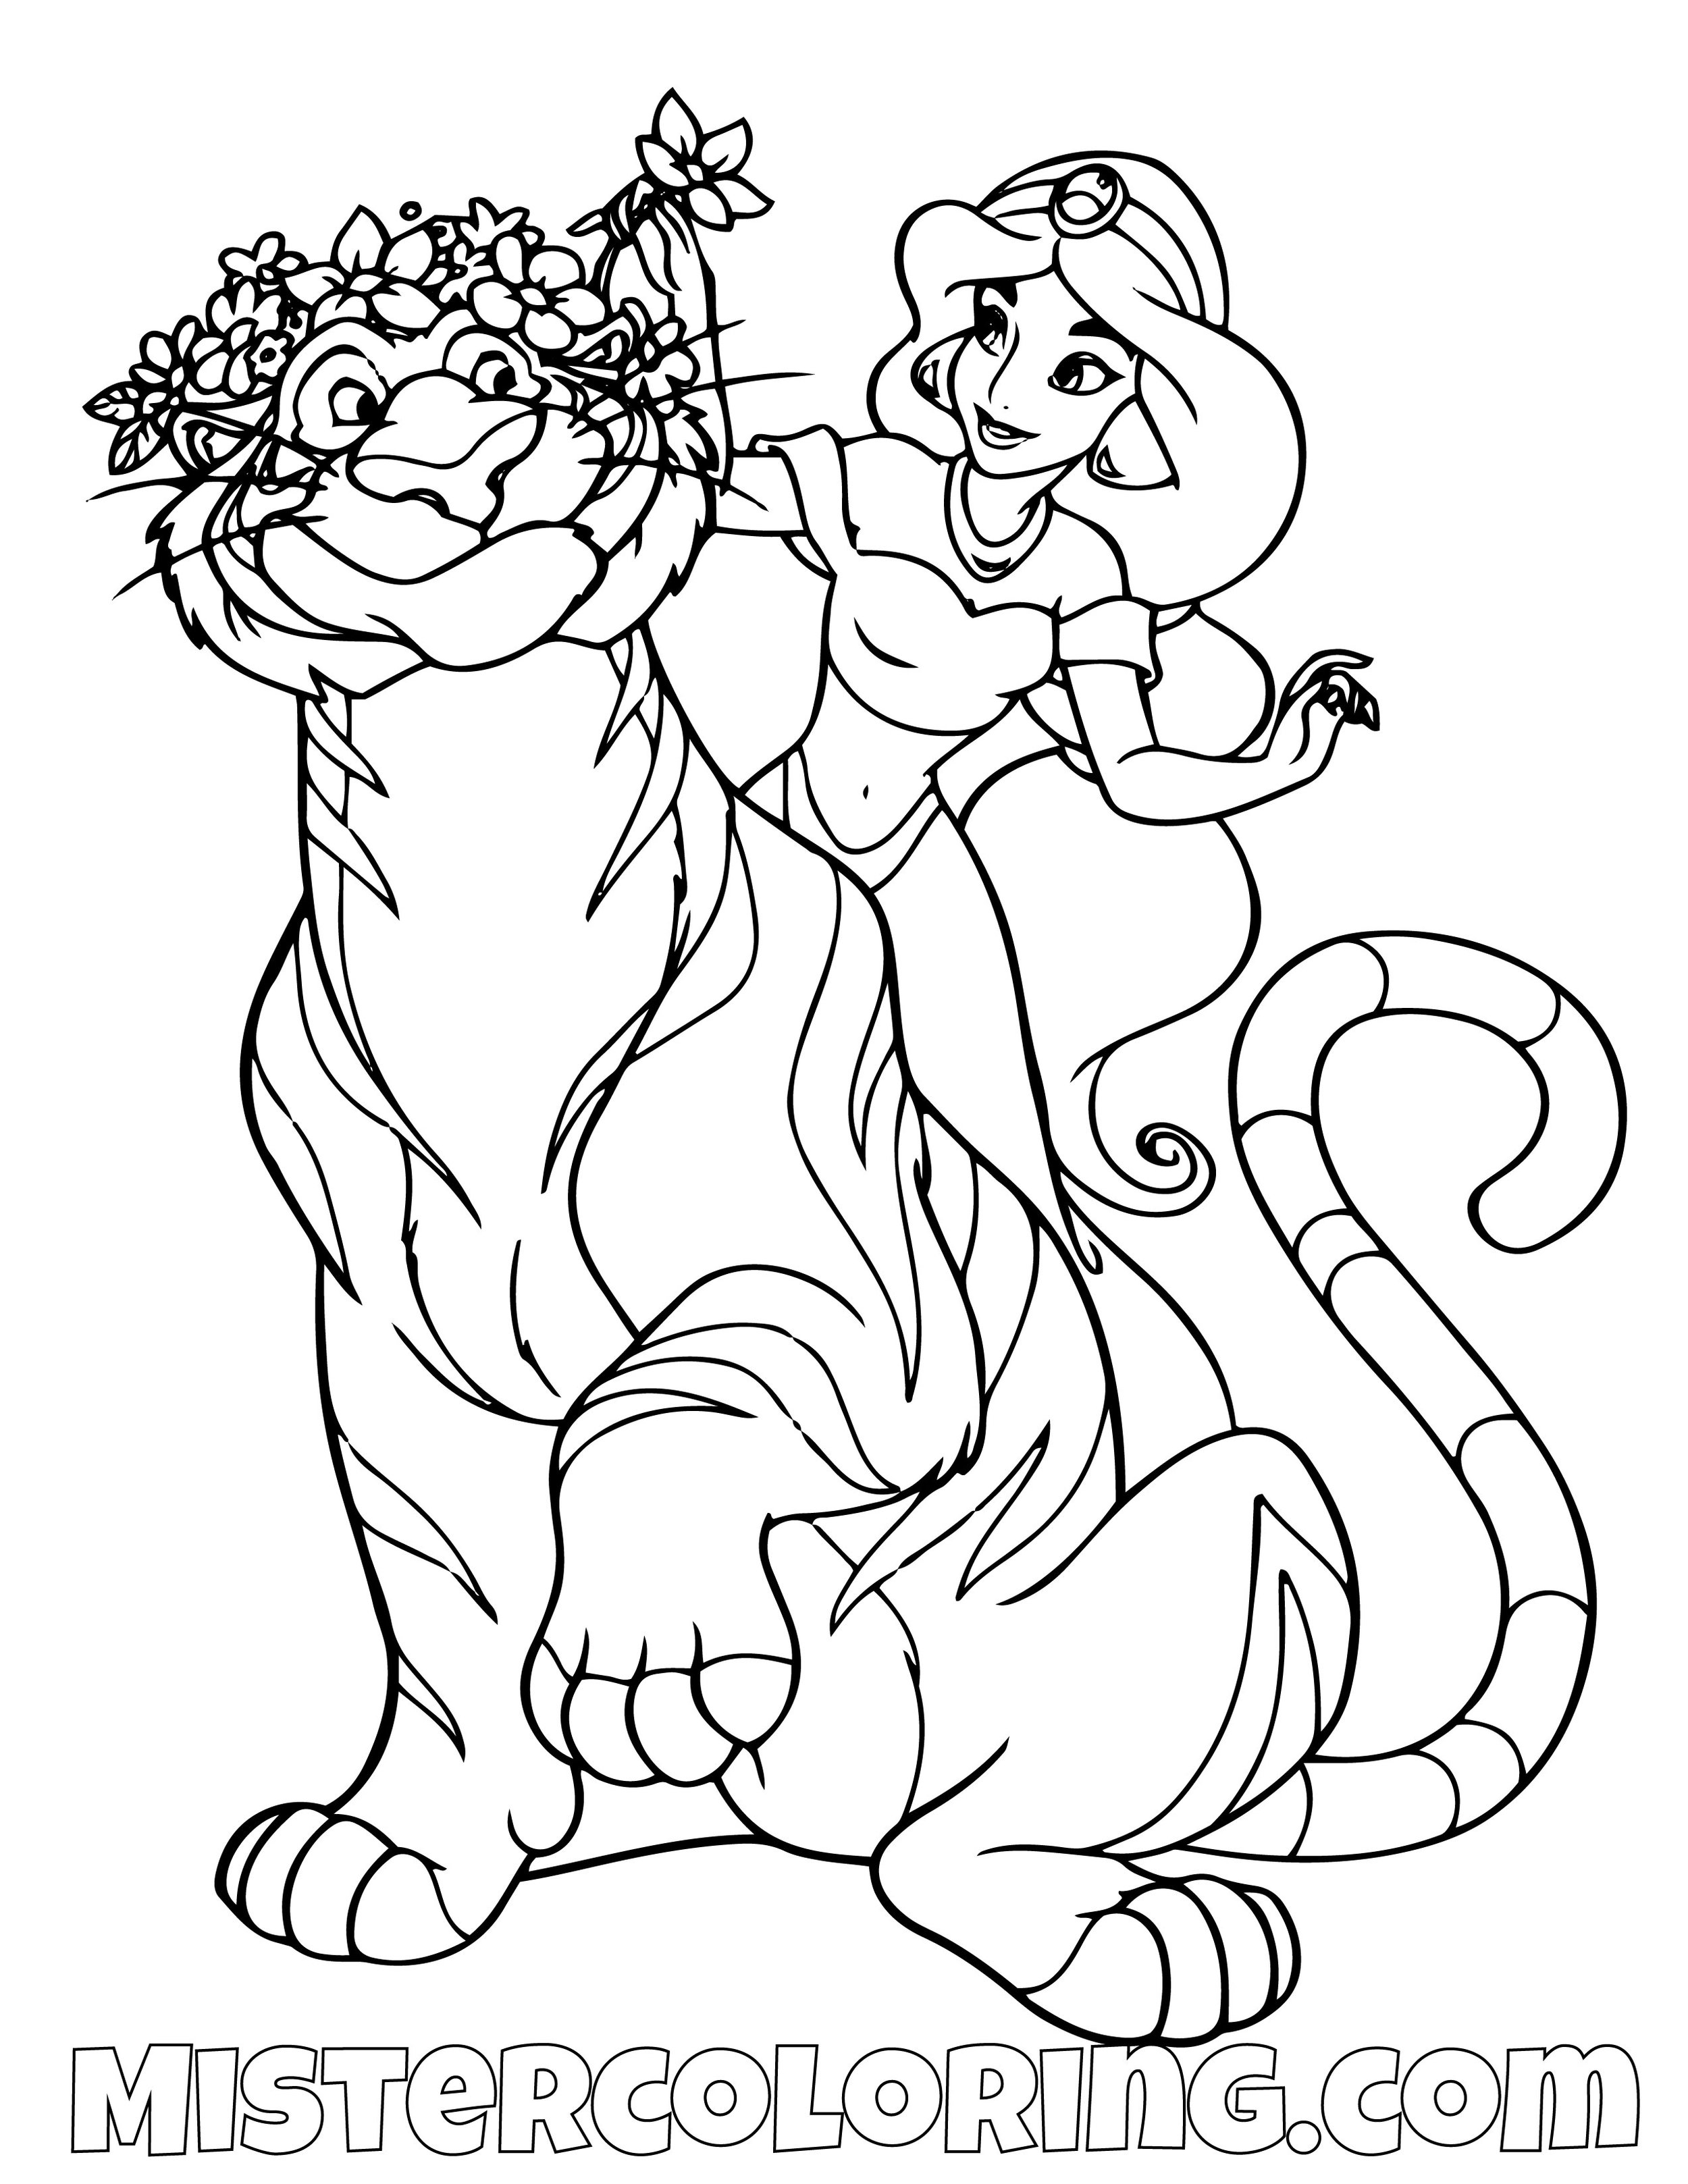 Princess Jasmine Giving Rajah A Flower Crown Aladdin Coloring Page